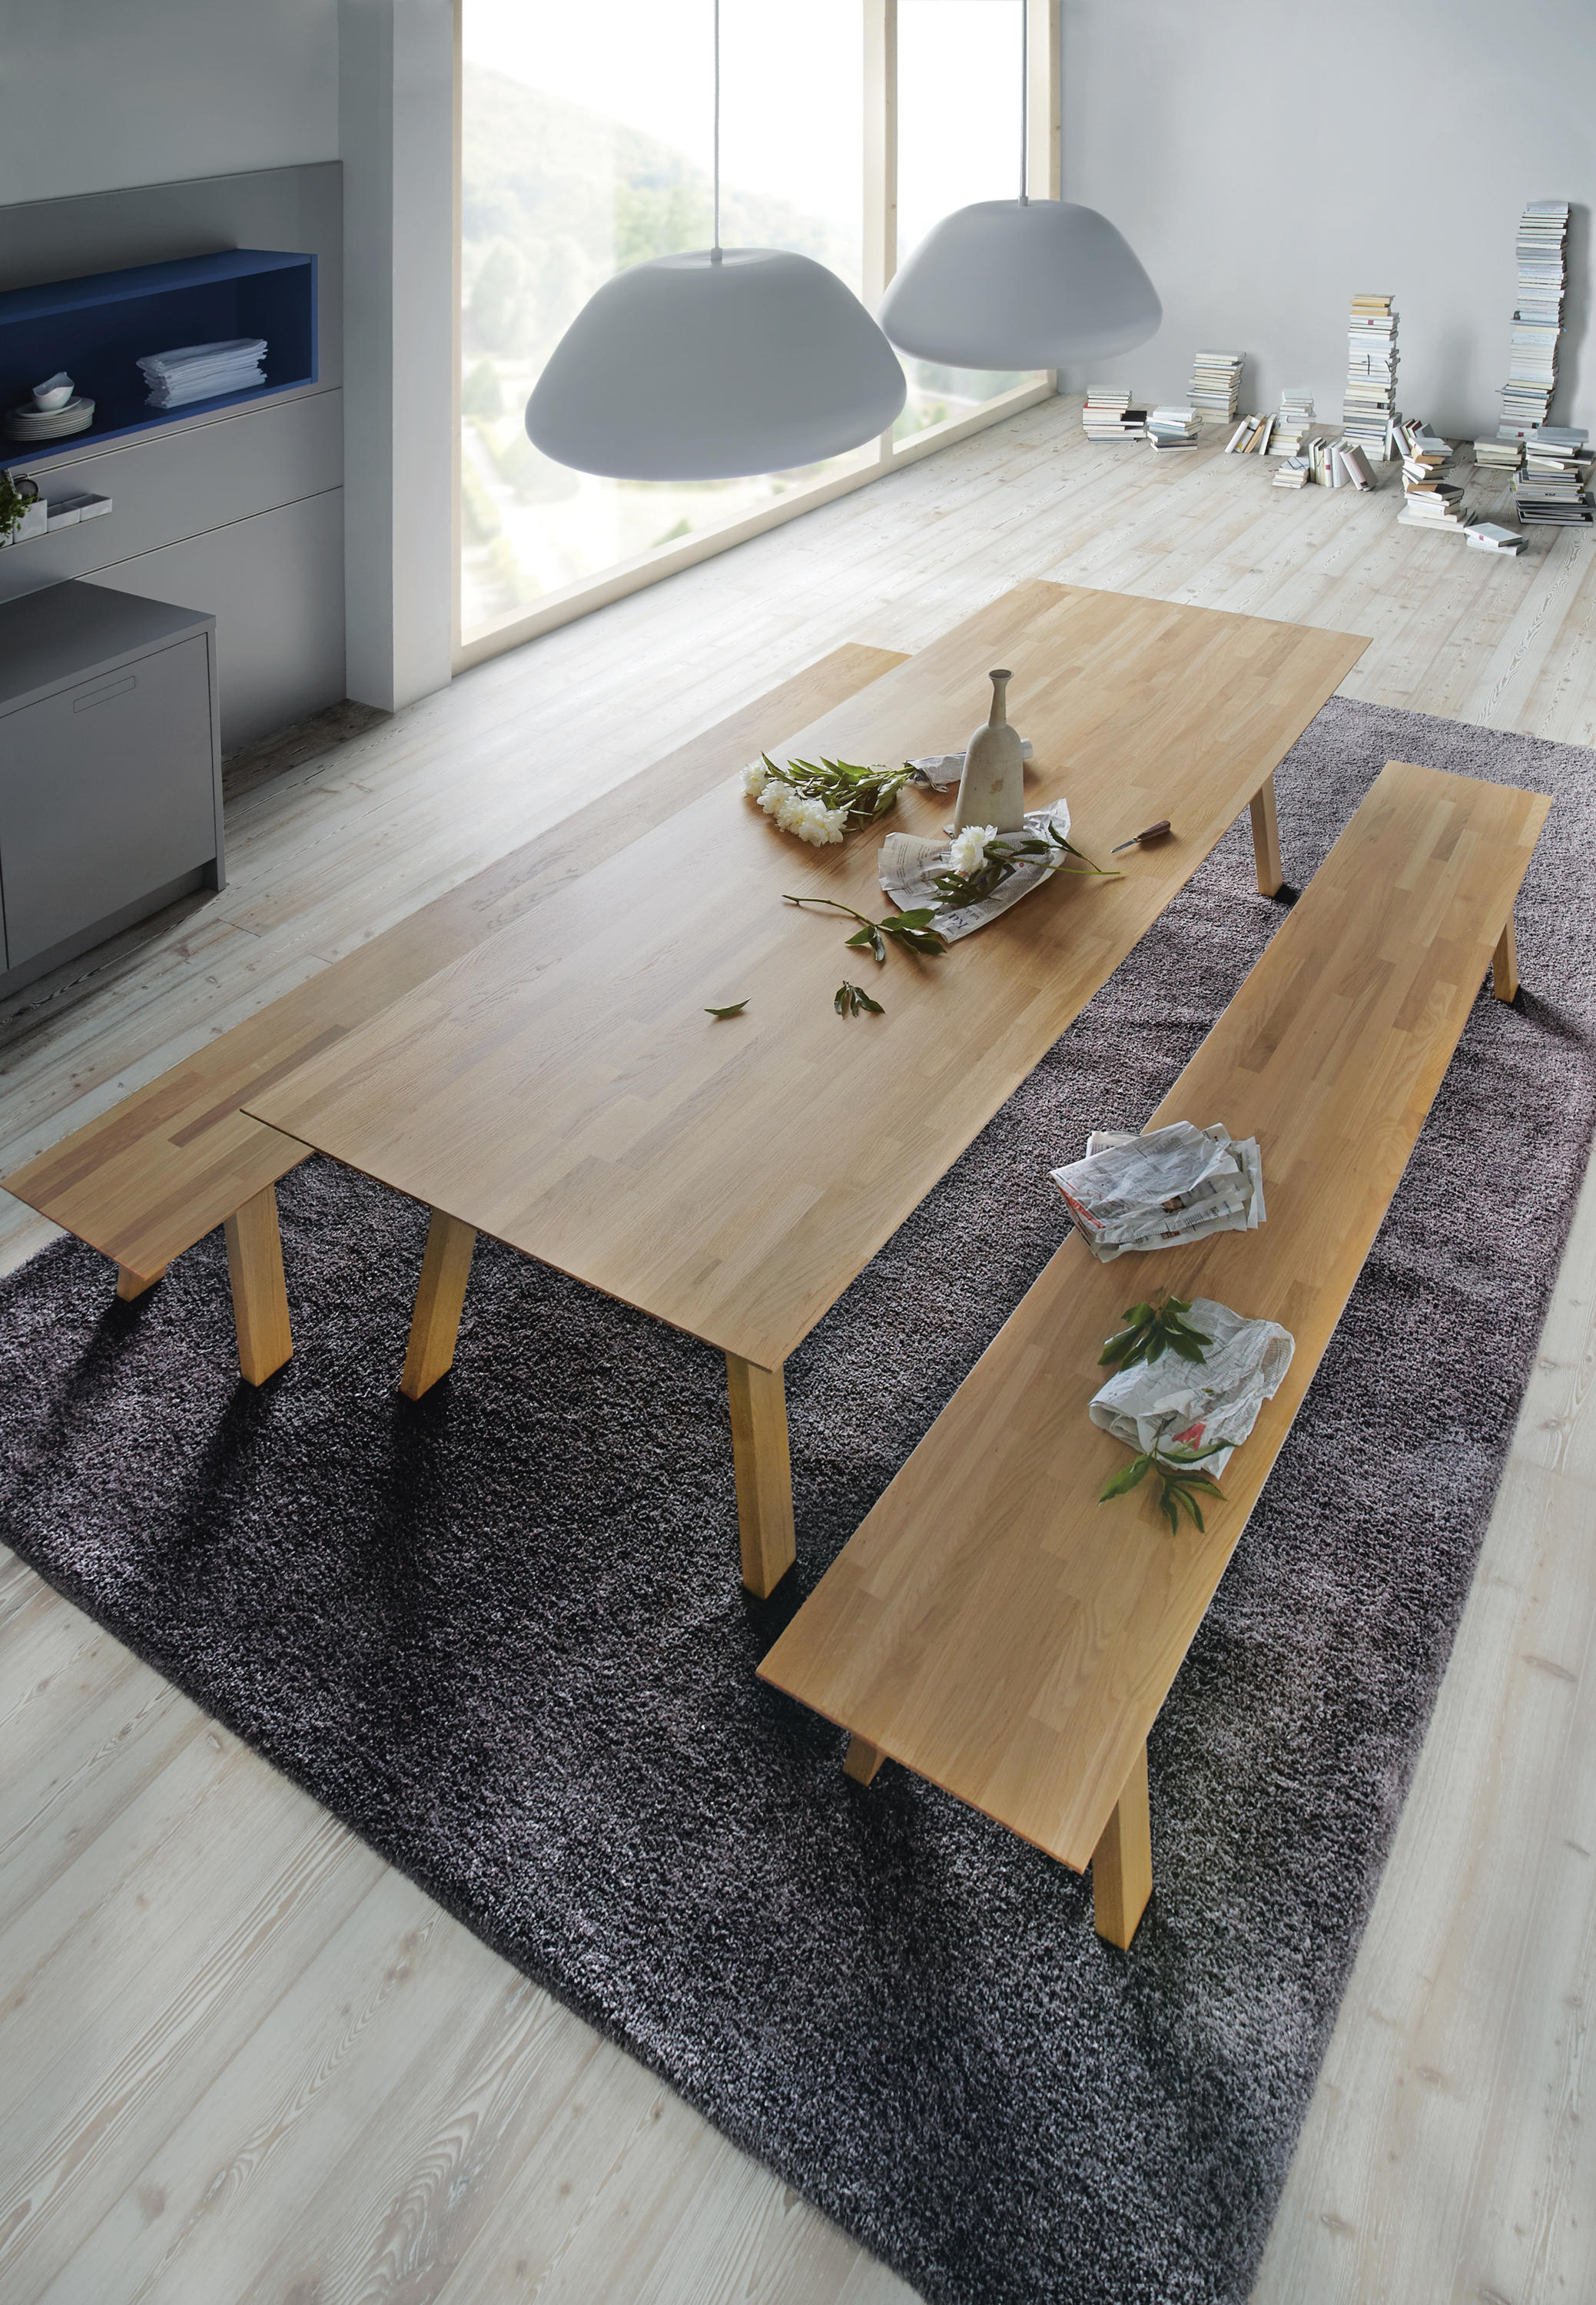 Groovy Tables With Benches Next Table Design Ideas Machost Co Dining Chair Design Ideas Machostcouk